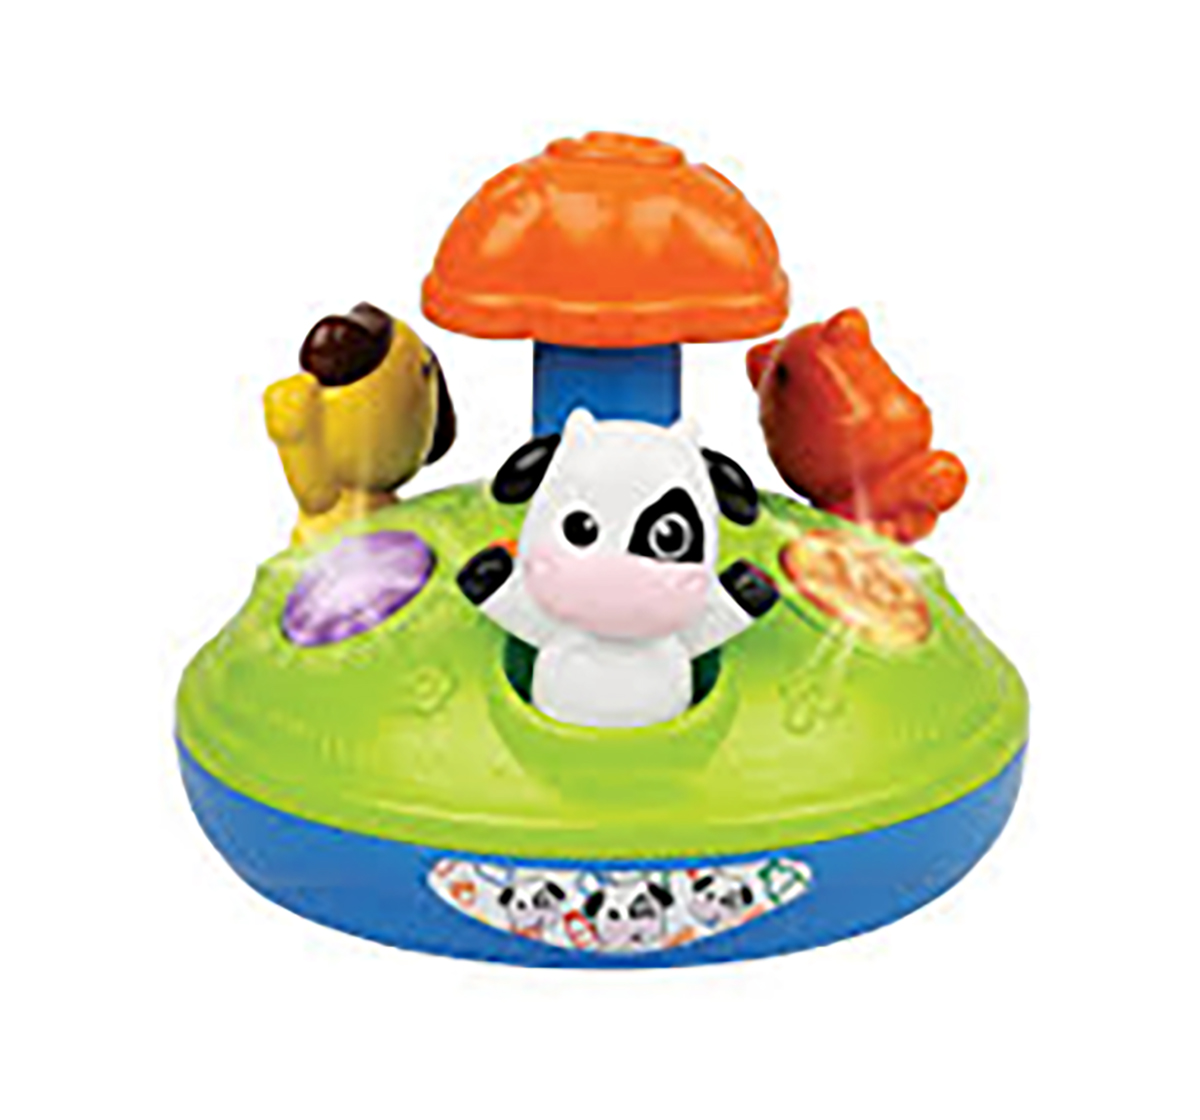 WinFun | Winfun - Animal Friends Spinner  New Born for Kids age 12M+